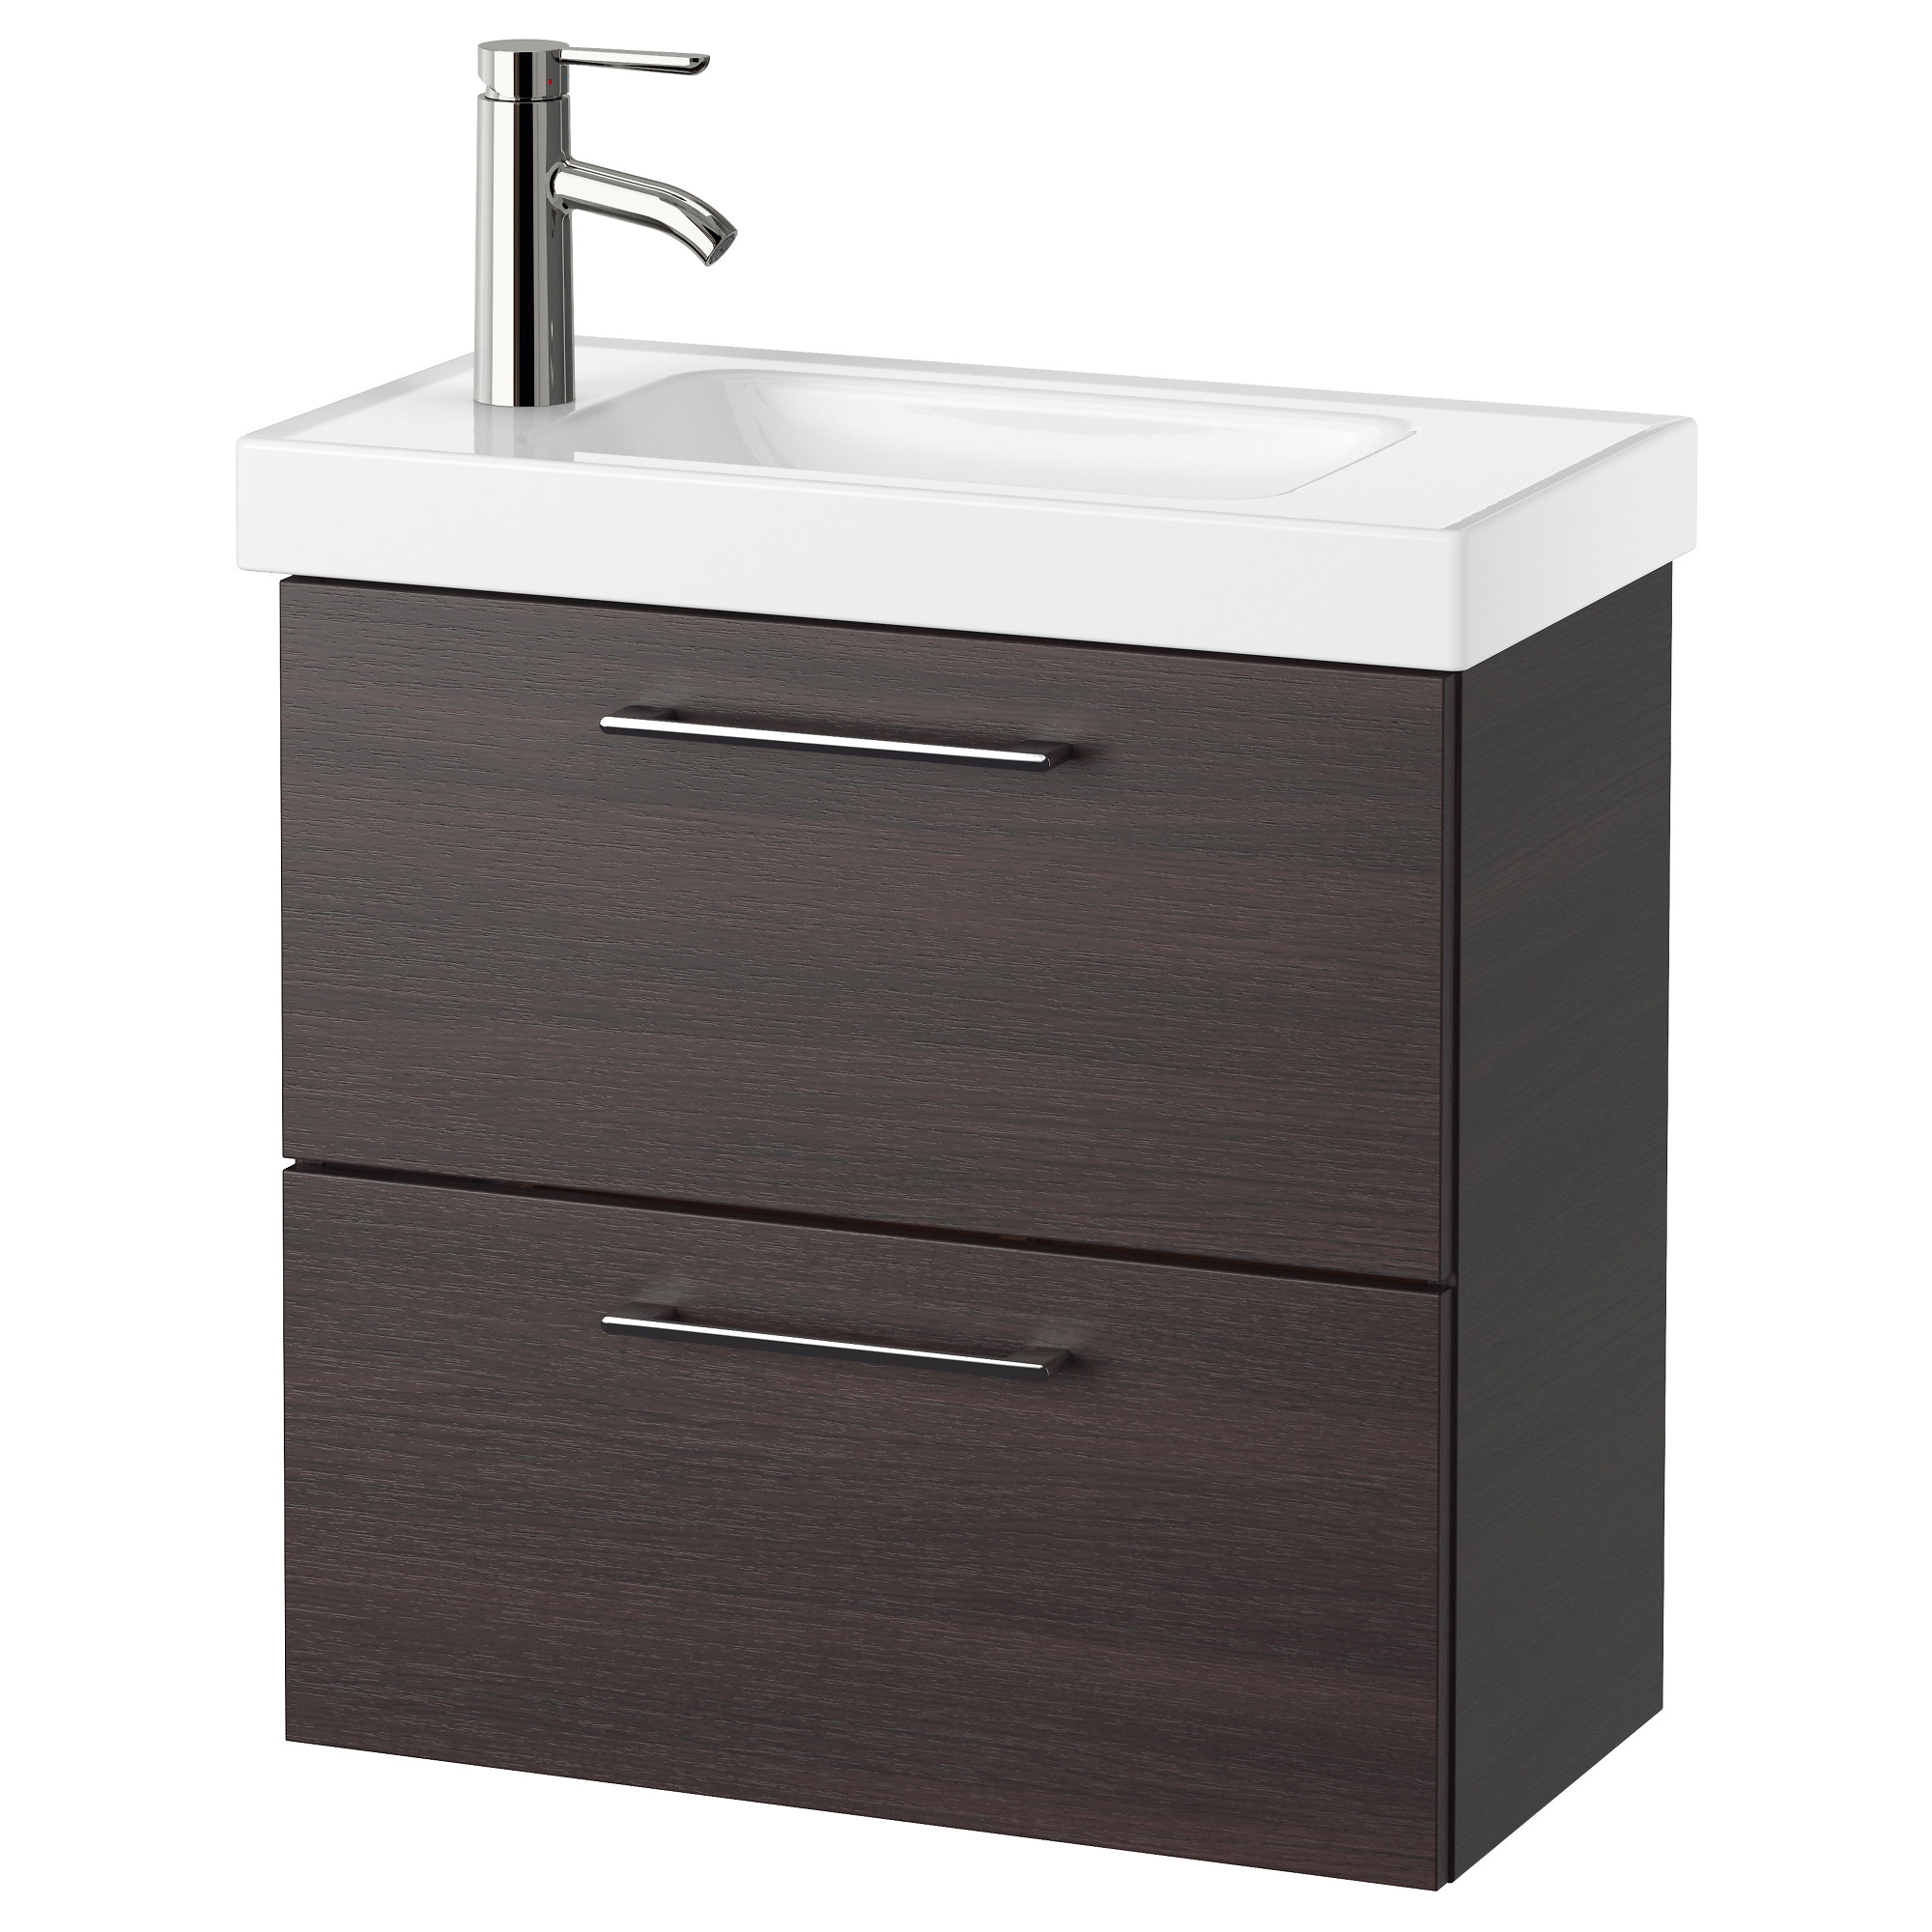 godmorgon hagaviken sink cabinet with 2 drawers black brown width 24 3